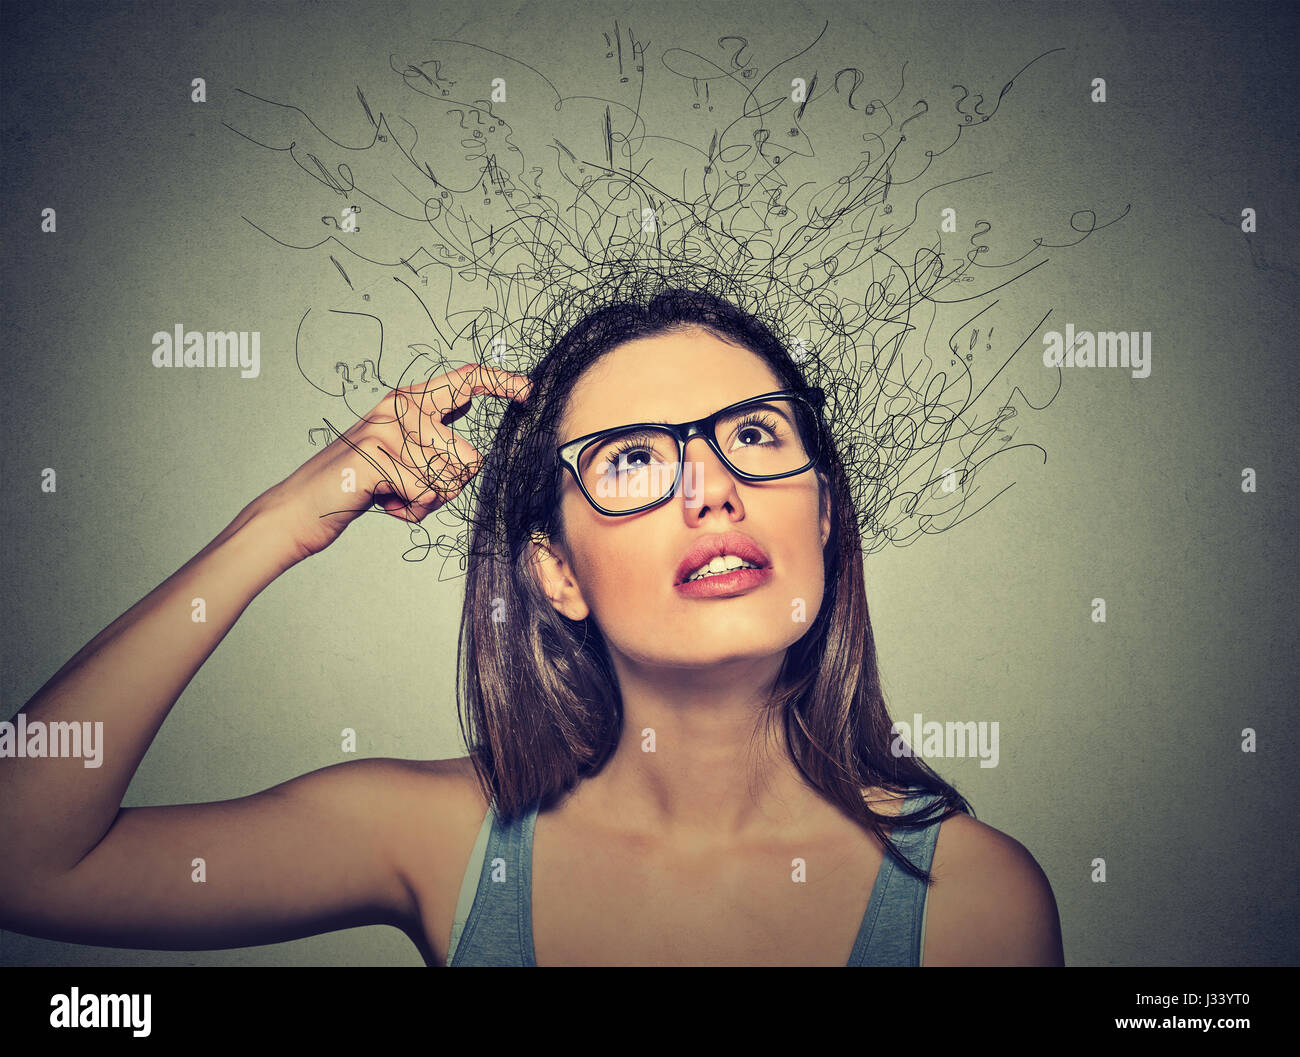 Closeup portrait young woman scratching head, thinking daydreaming with brain melting into lines question marks - Stock Image